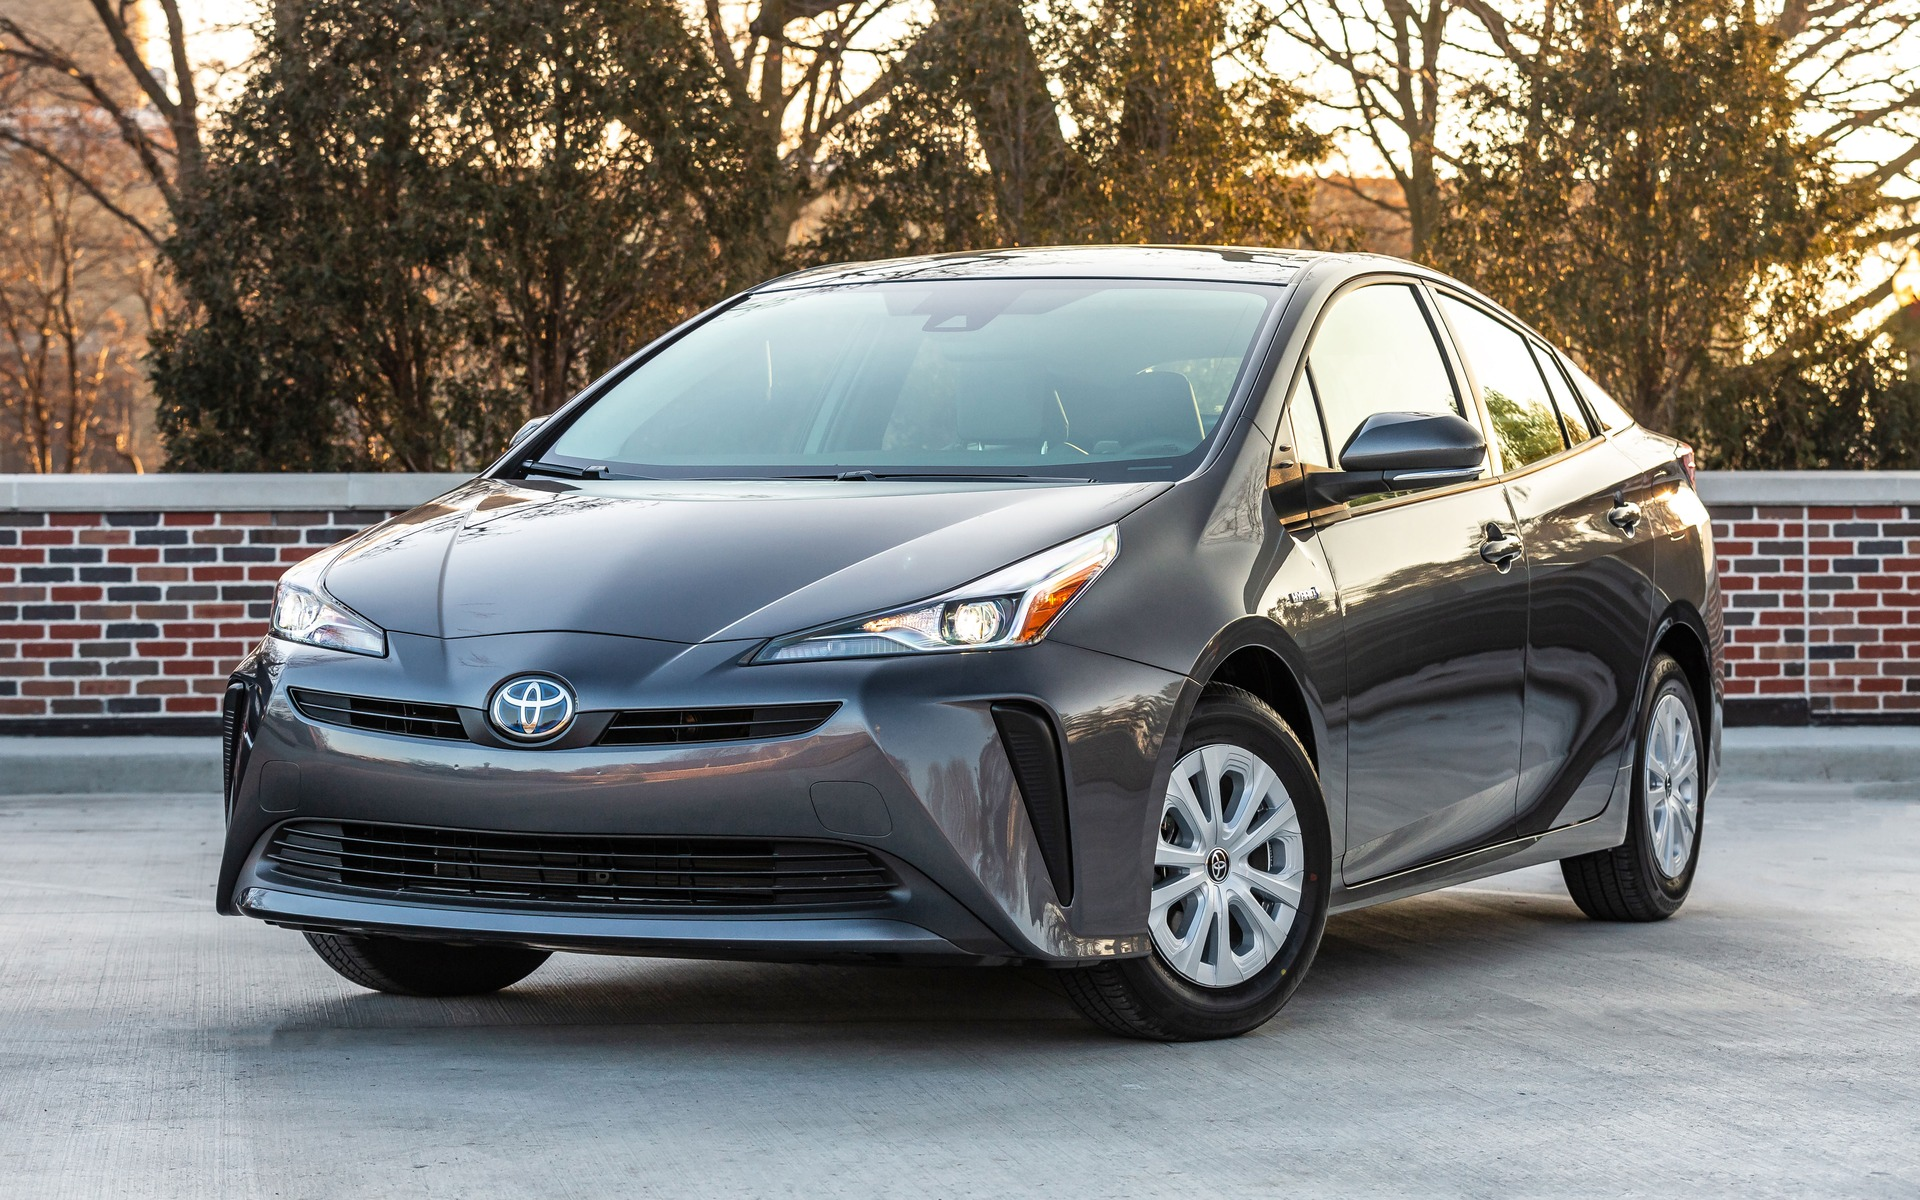 2020 Toyota Prius Pictures Release Date and Concept